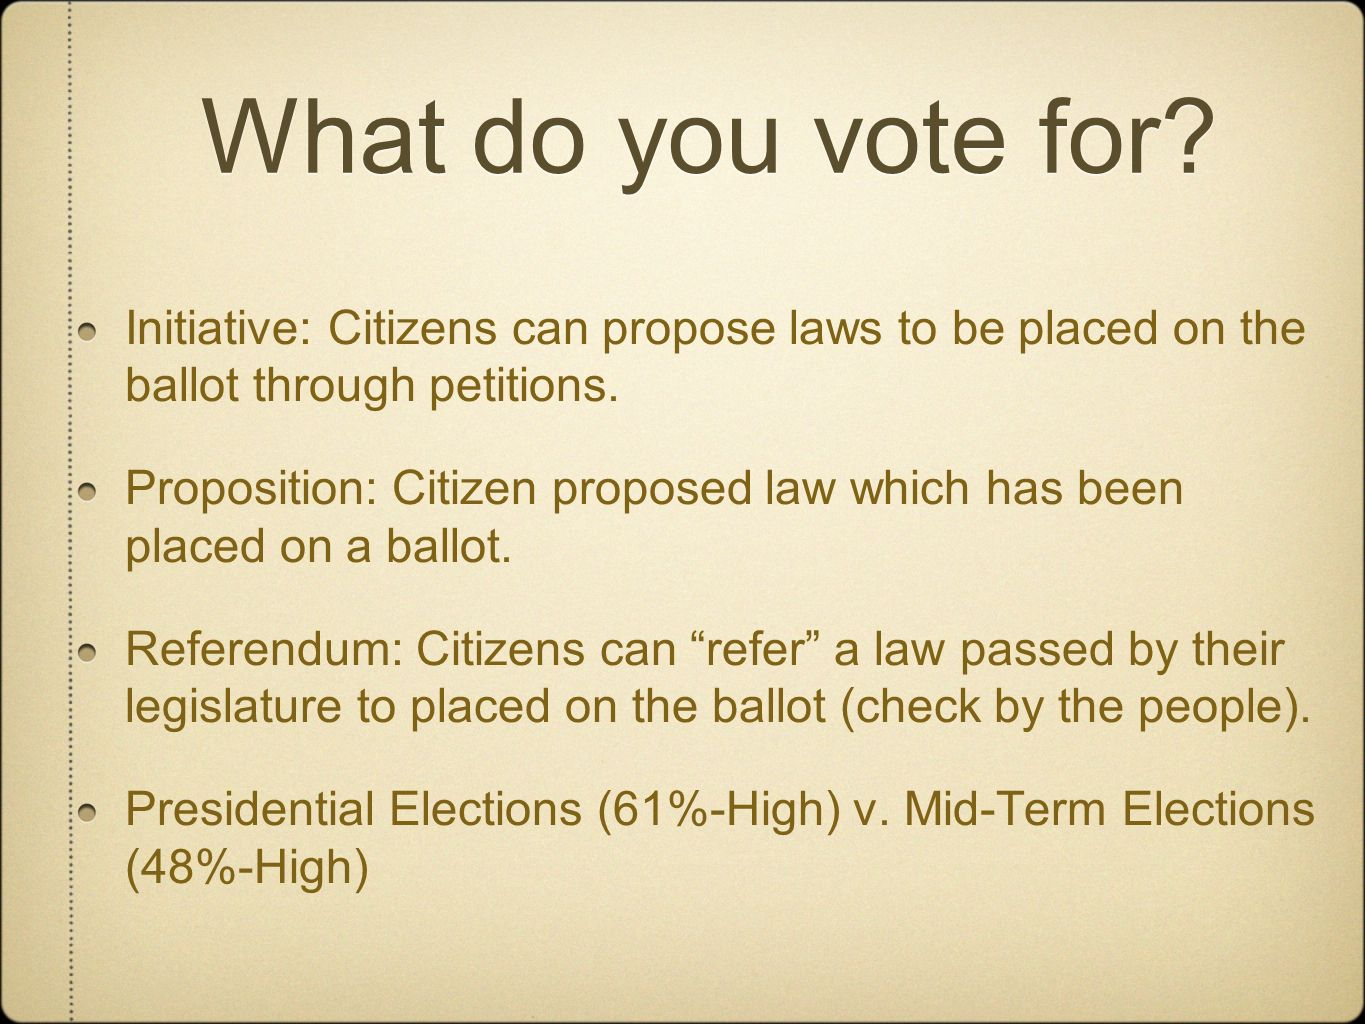 What do you vote for Initiative: Citizens can propose laws to be placed on the ballot through petitions.